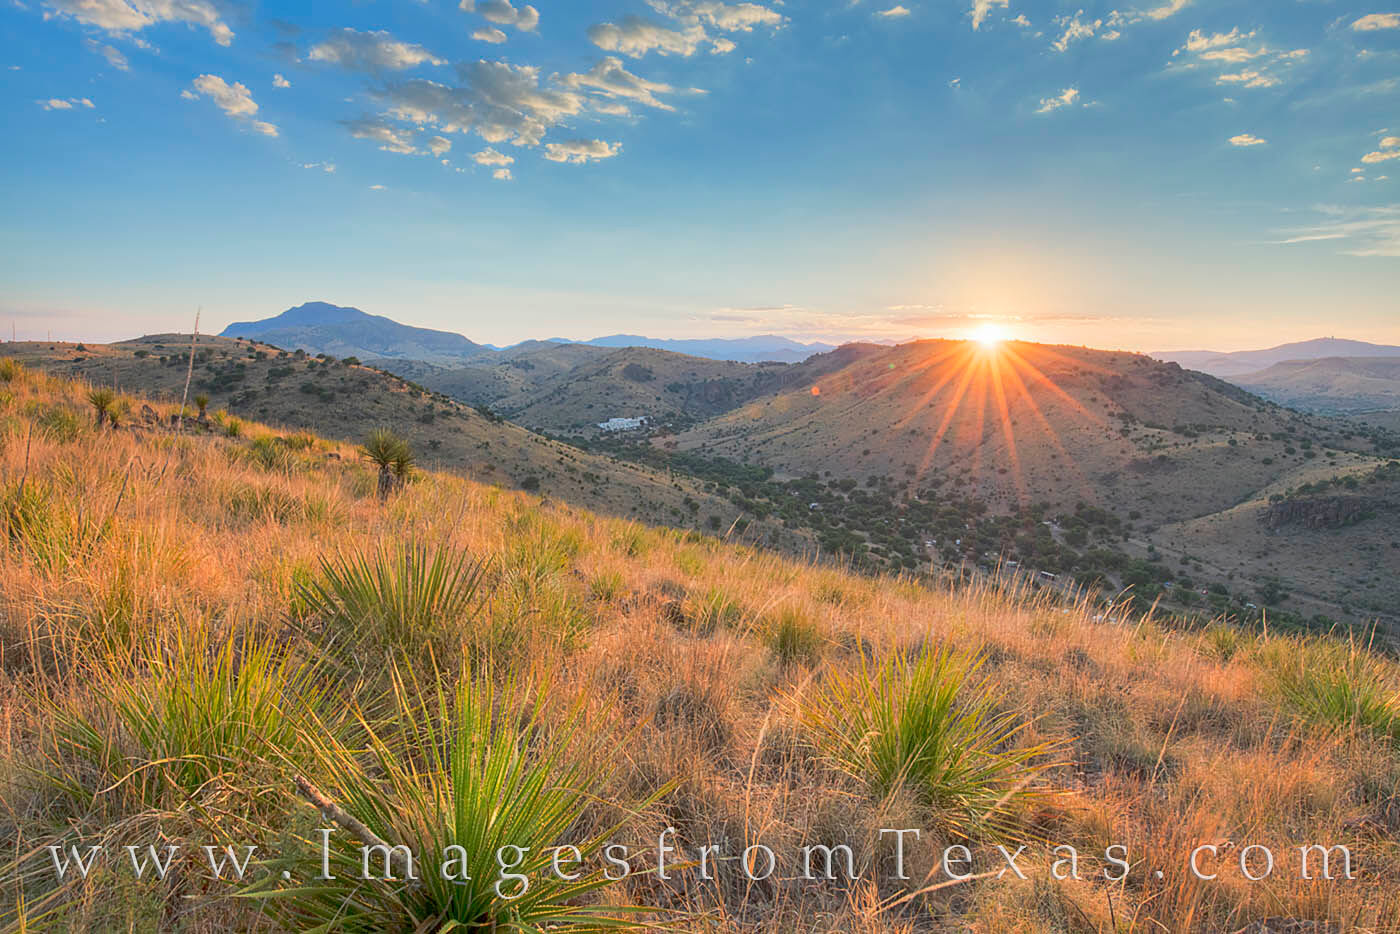 Davis Mountains State Park offers remarkable views of this remote Texas landscape. Located north of Alpine near Fort Davis, these...